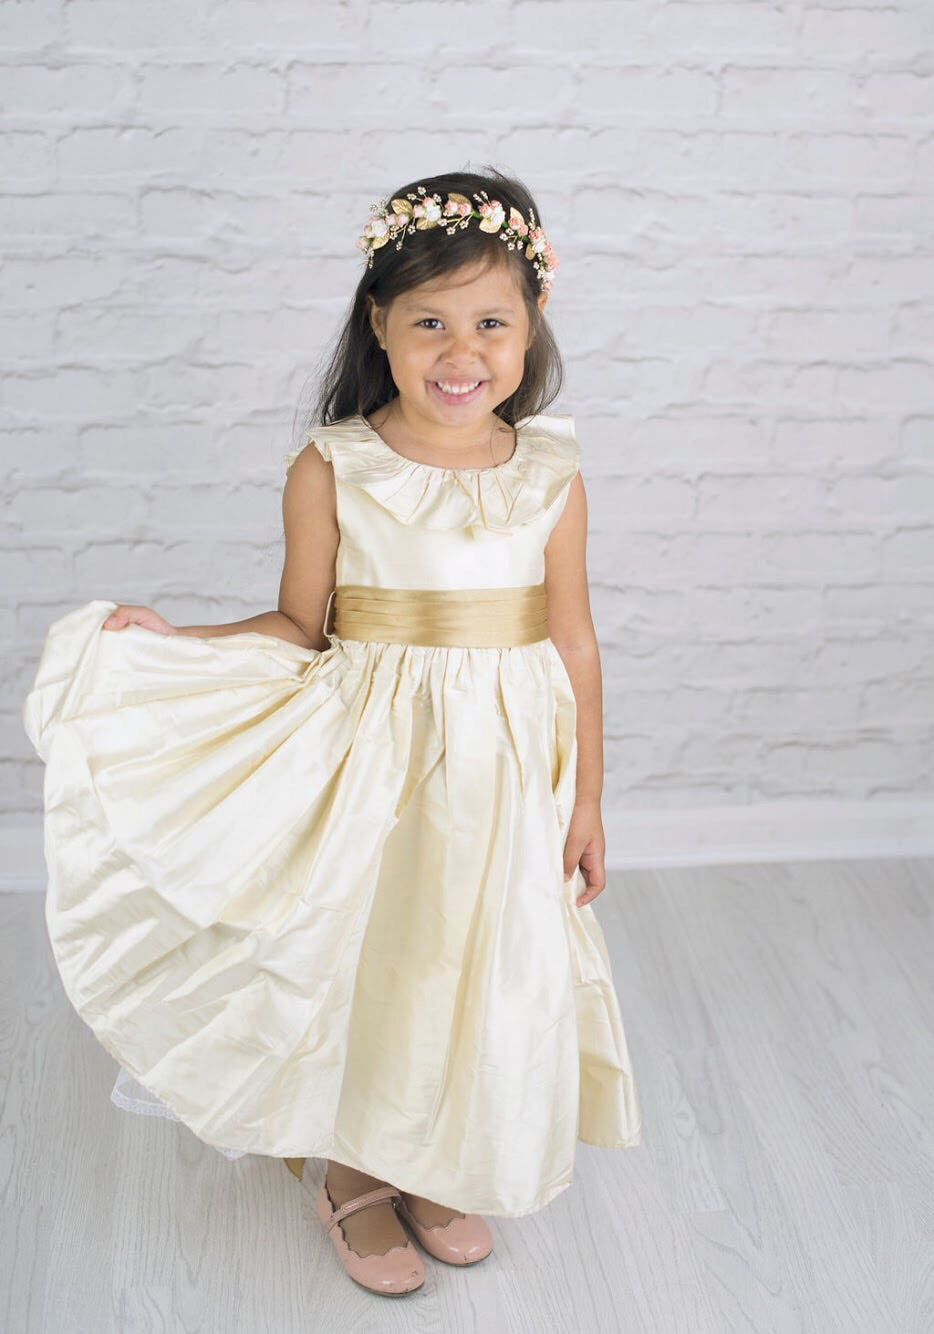 Nicola Flower Girl Dress, Flower Girls Dresses, Bianca Miele London